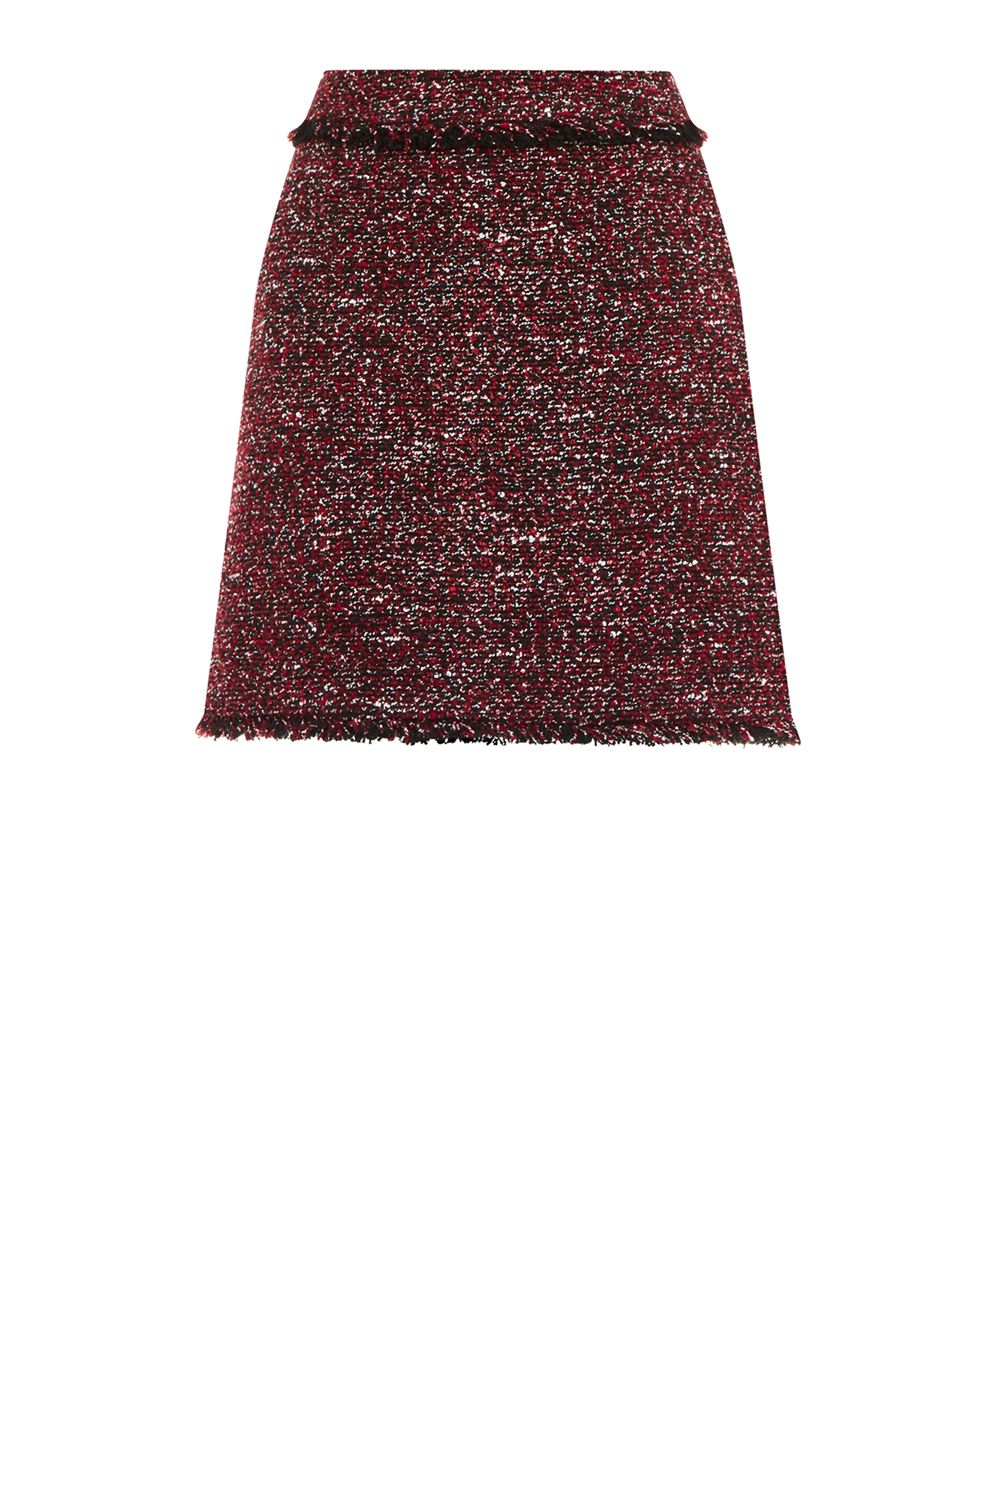 Warehouse Victoria Tweed Skirt, Red